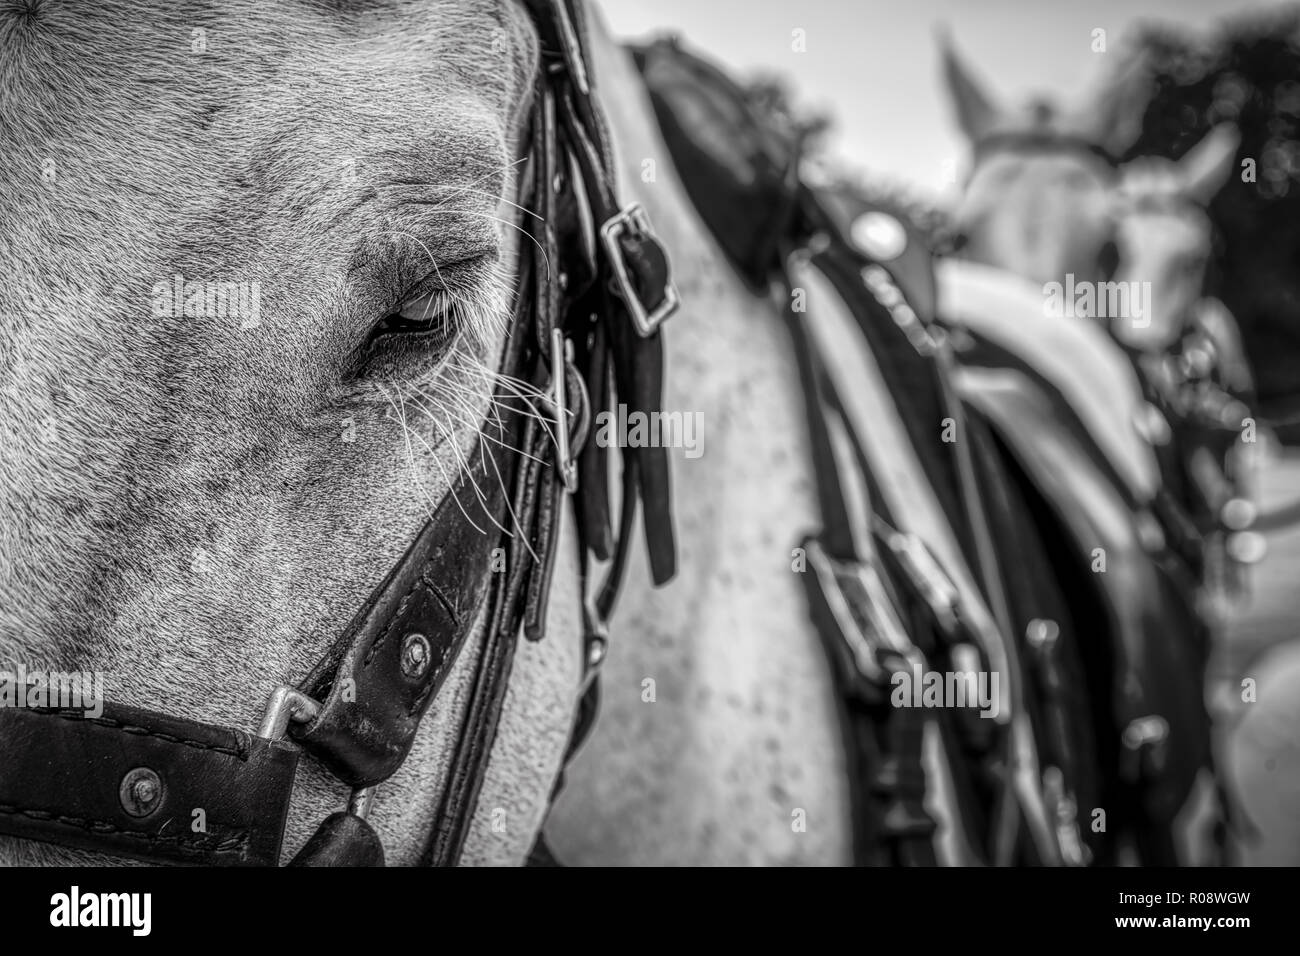 The first horse in a line of horses pulling a wagon. - Stock Image